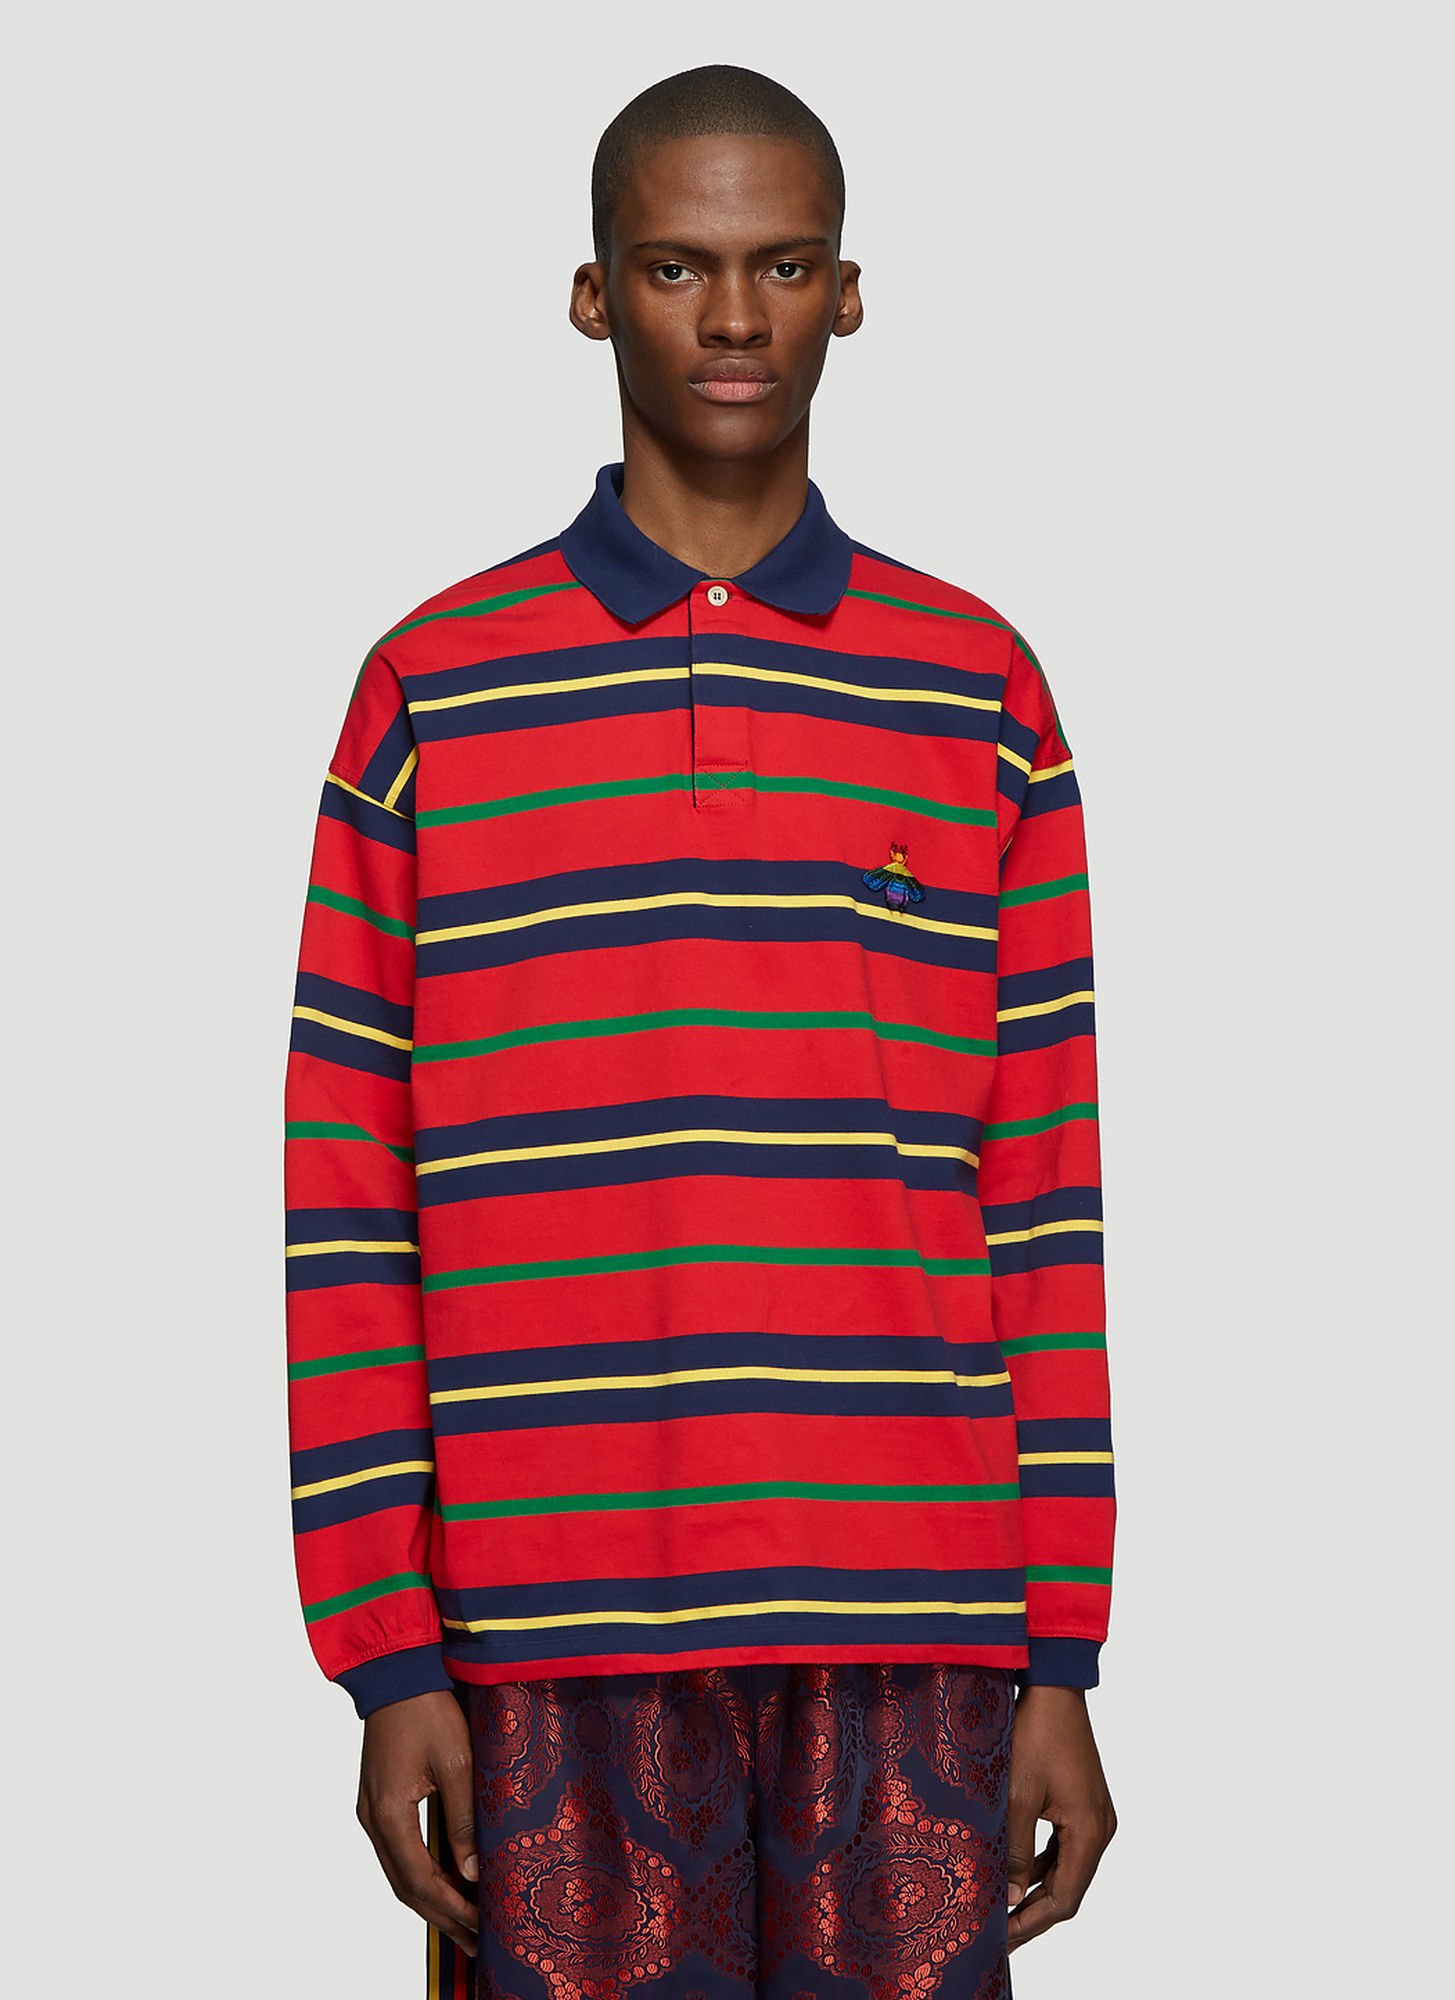 Gucci Striped Bee Long Sleeve Polo T-Shirt in Red size L ...